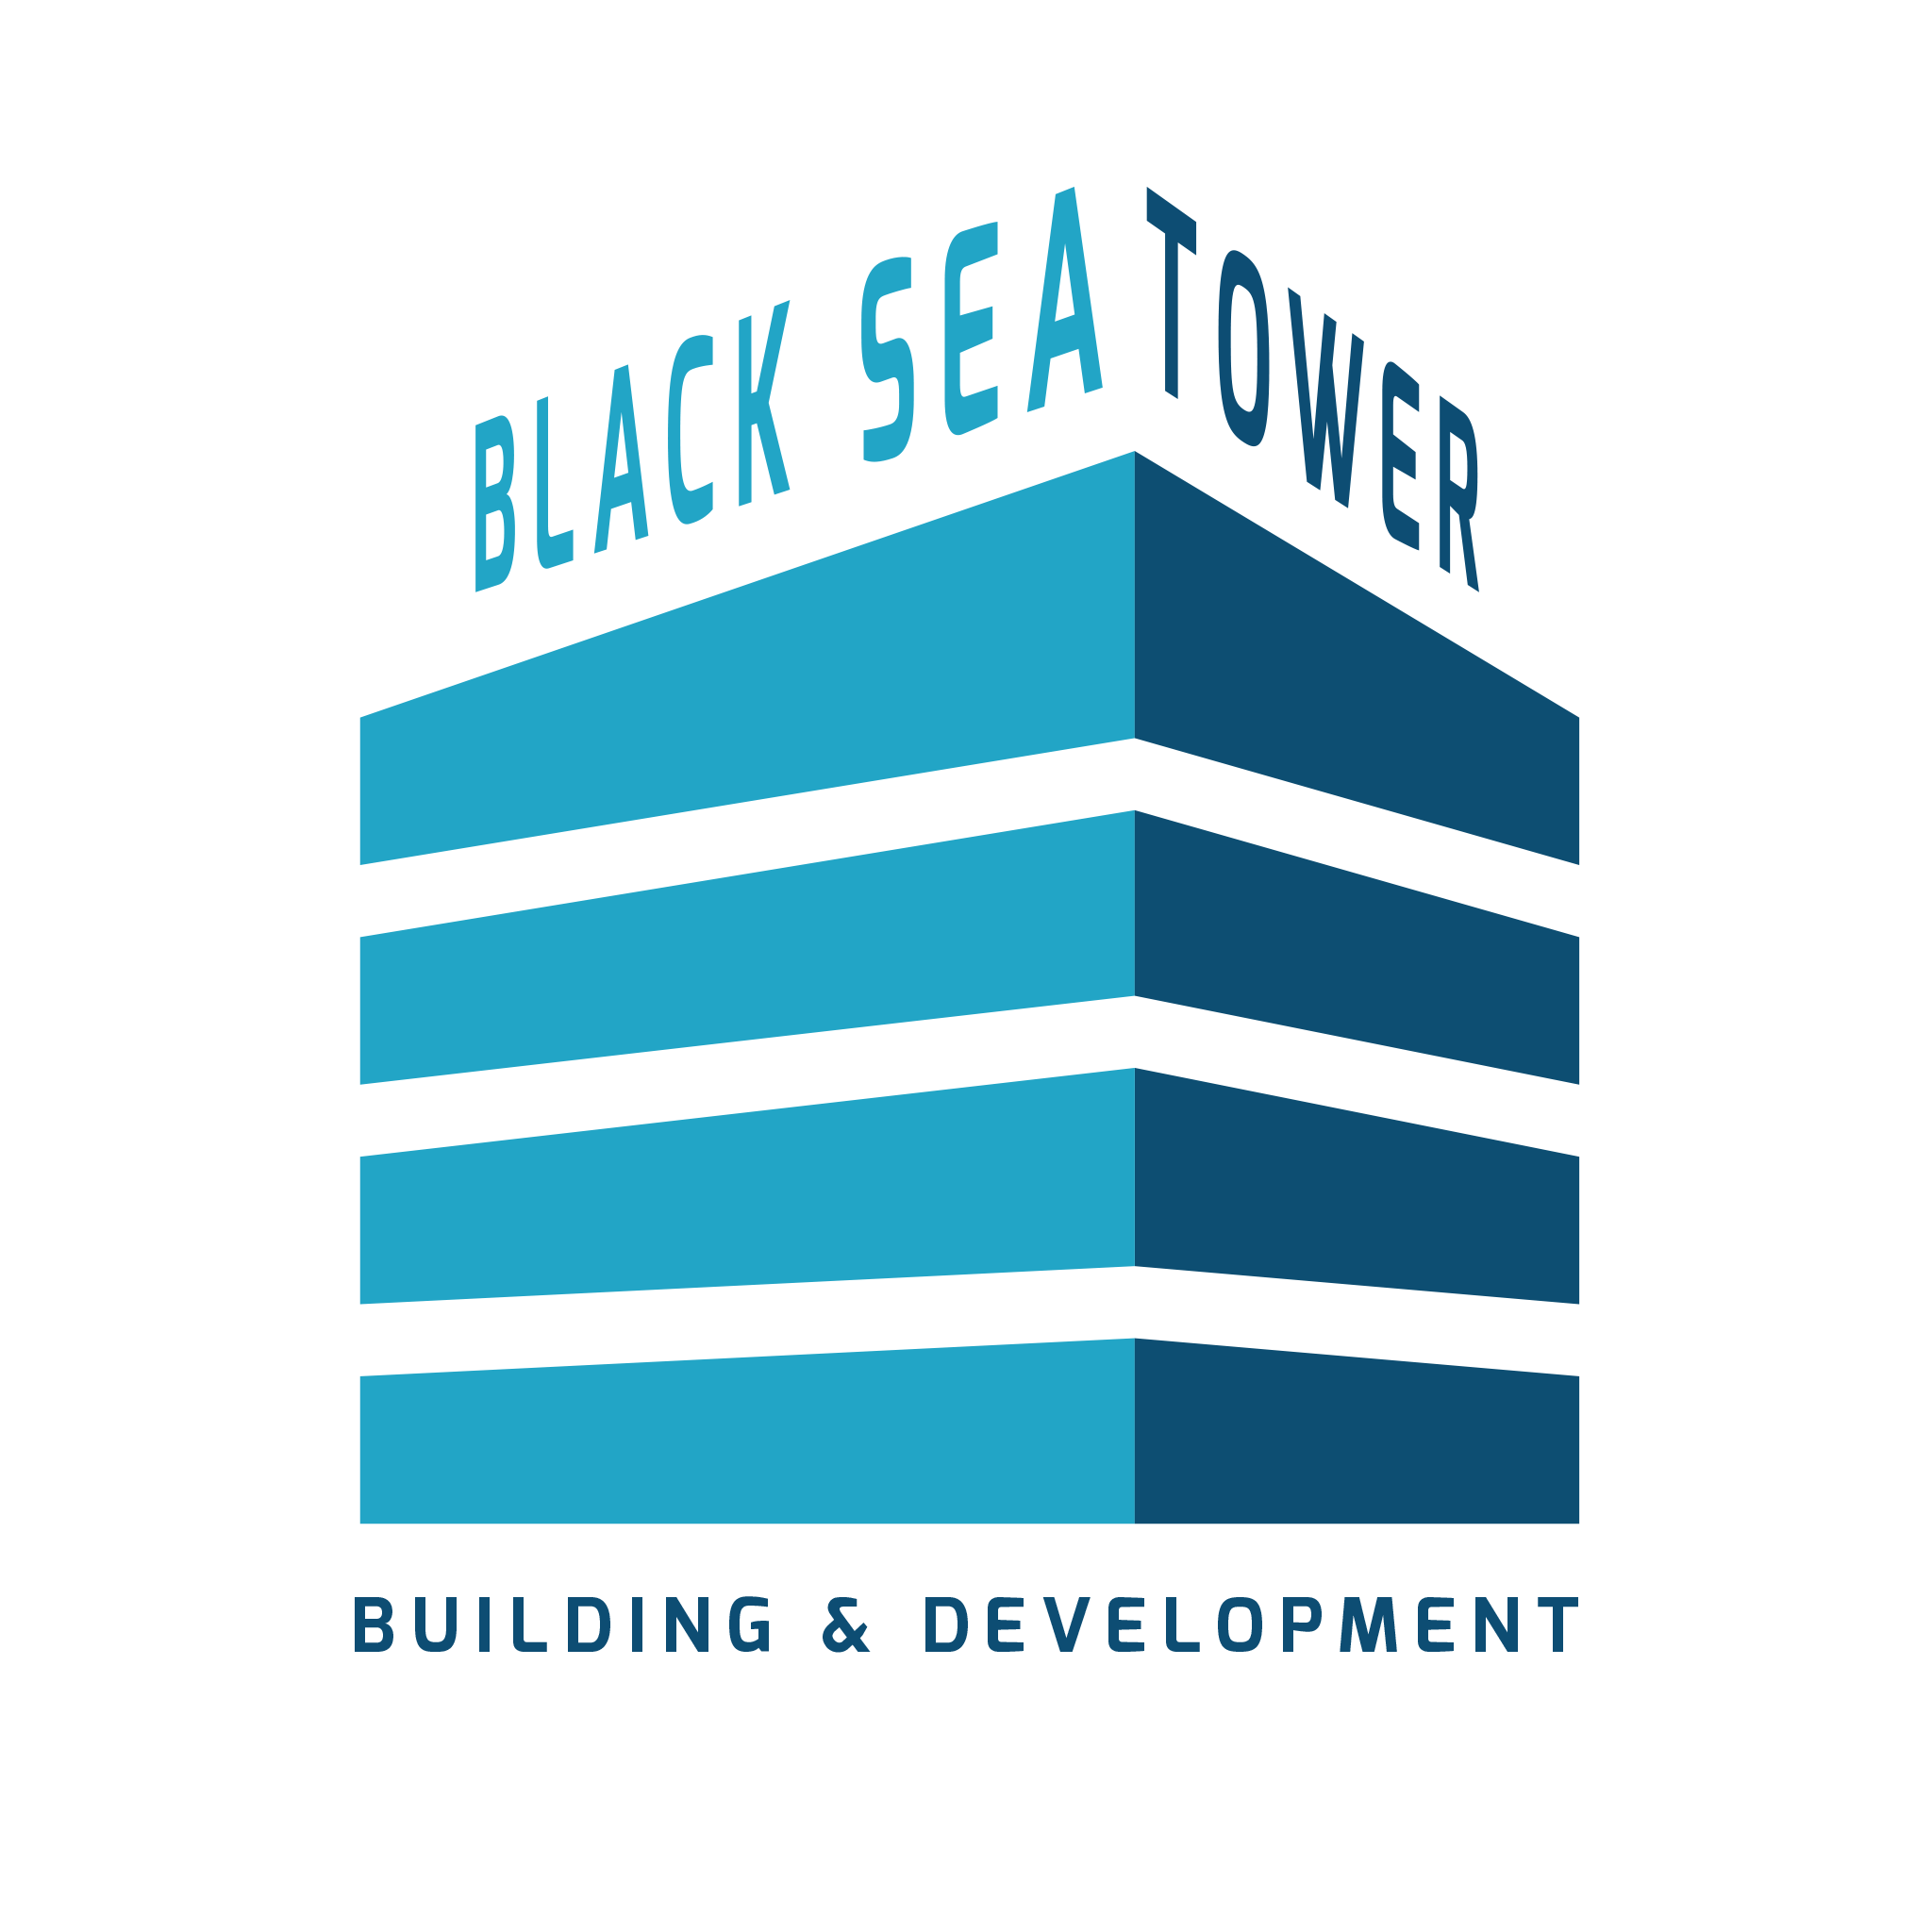 Black Sea Tower